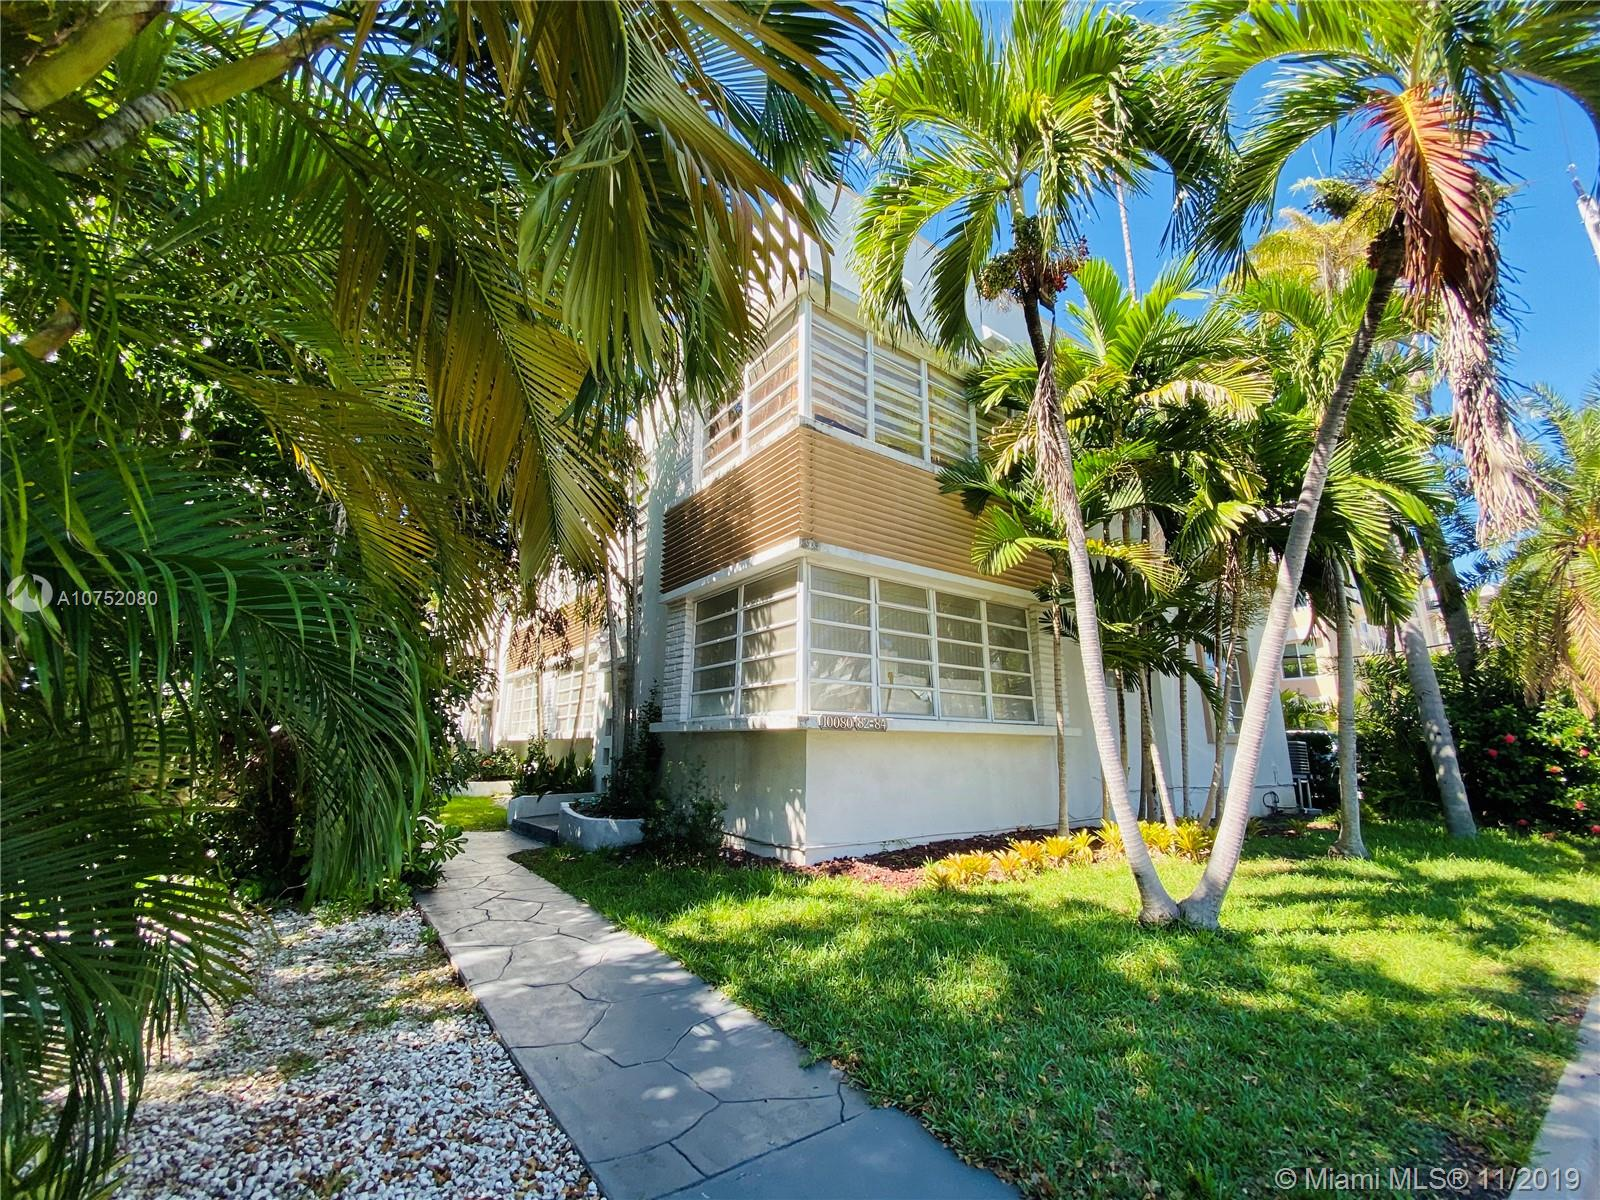 10082 W Bay Harbor Drive #7 For Sale A10752080, FL